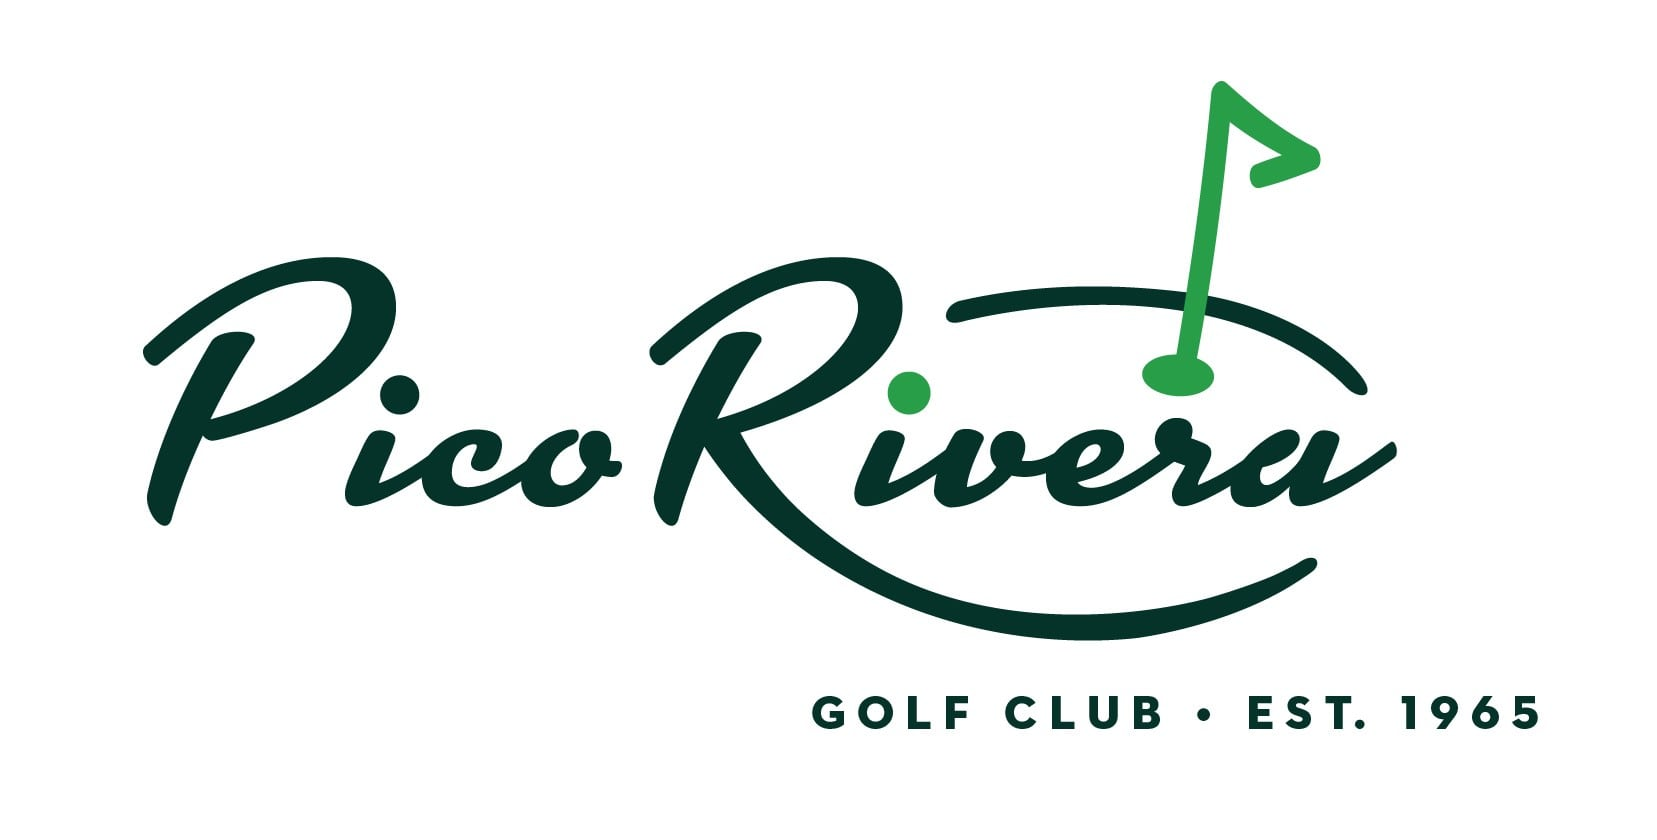 Dos Rios Golf Club Short crop logo min